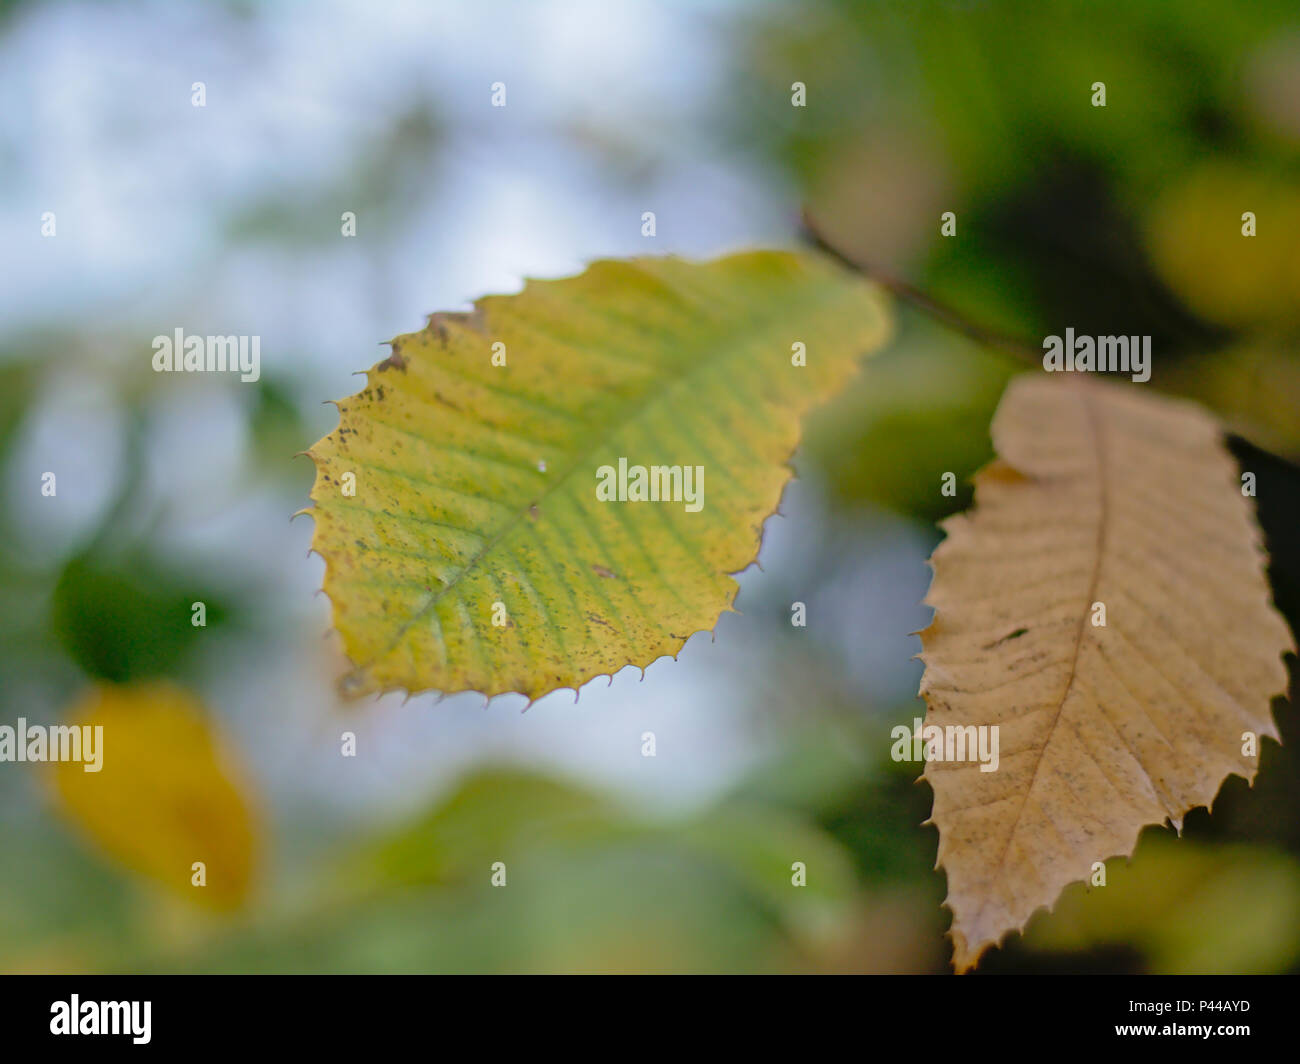 Asian chestnut oak leafs, selective focus with soft blurry background - Quercus acutissima - Stock Image